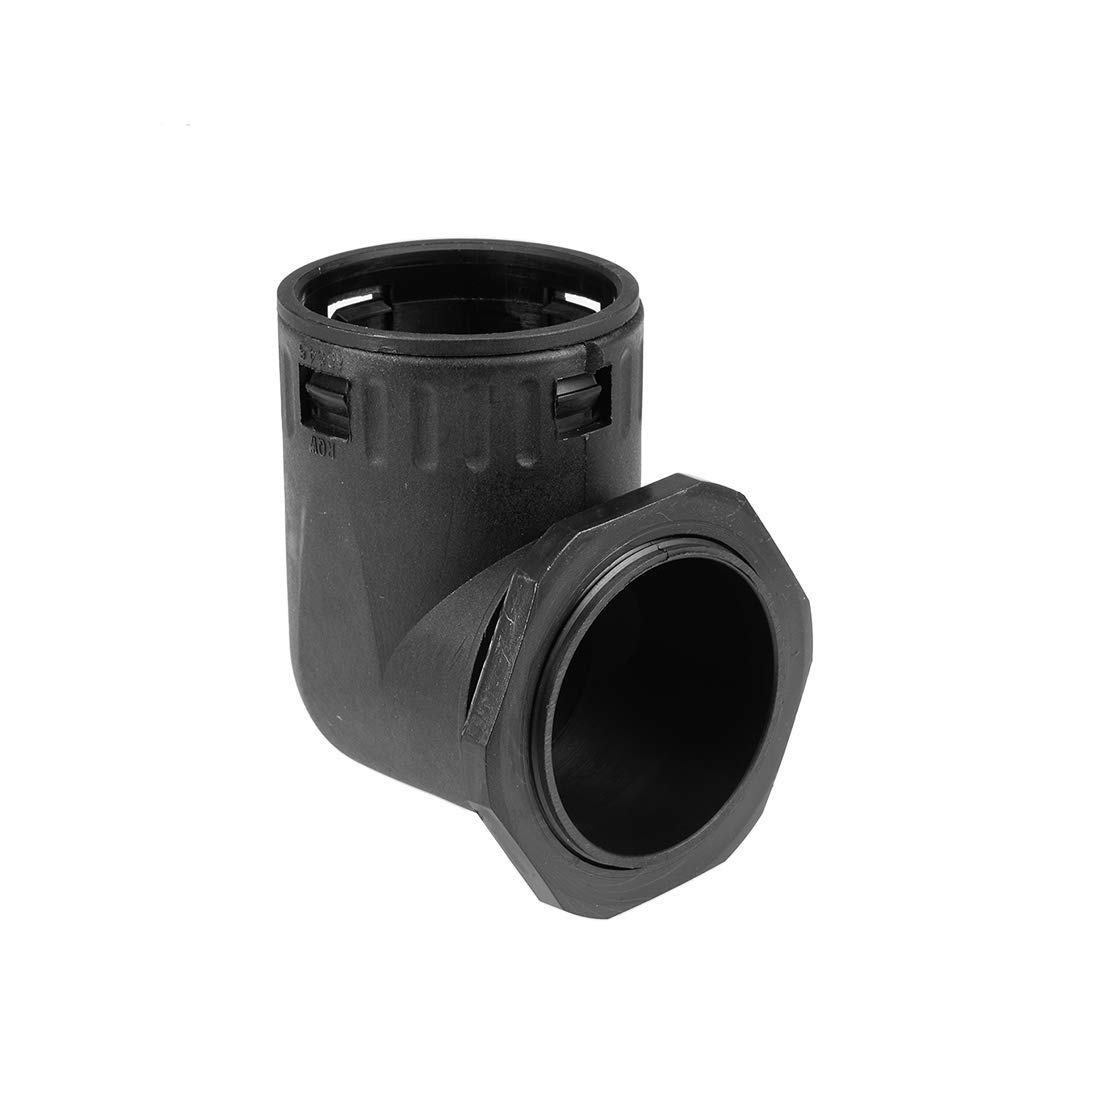 90 degree corrugated pipe connector AD54.5 Duct hose clamps